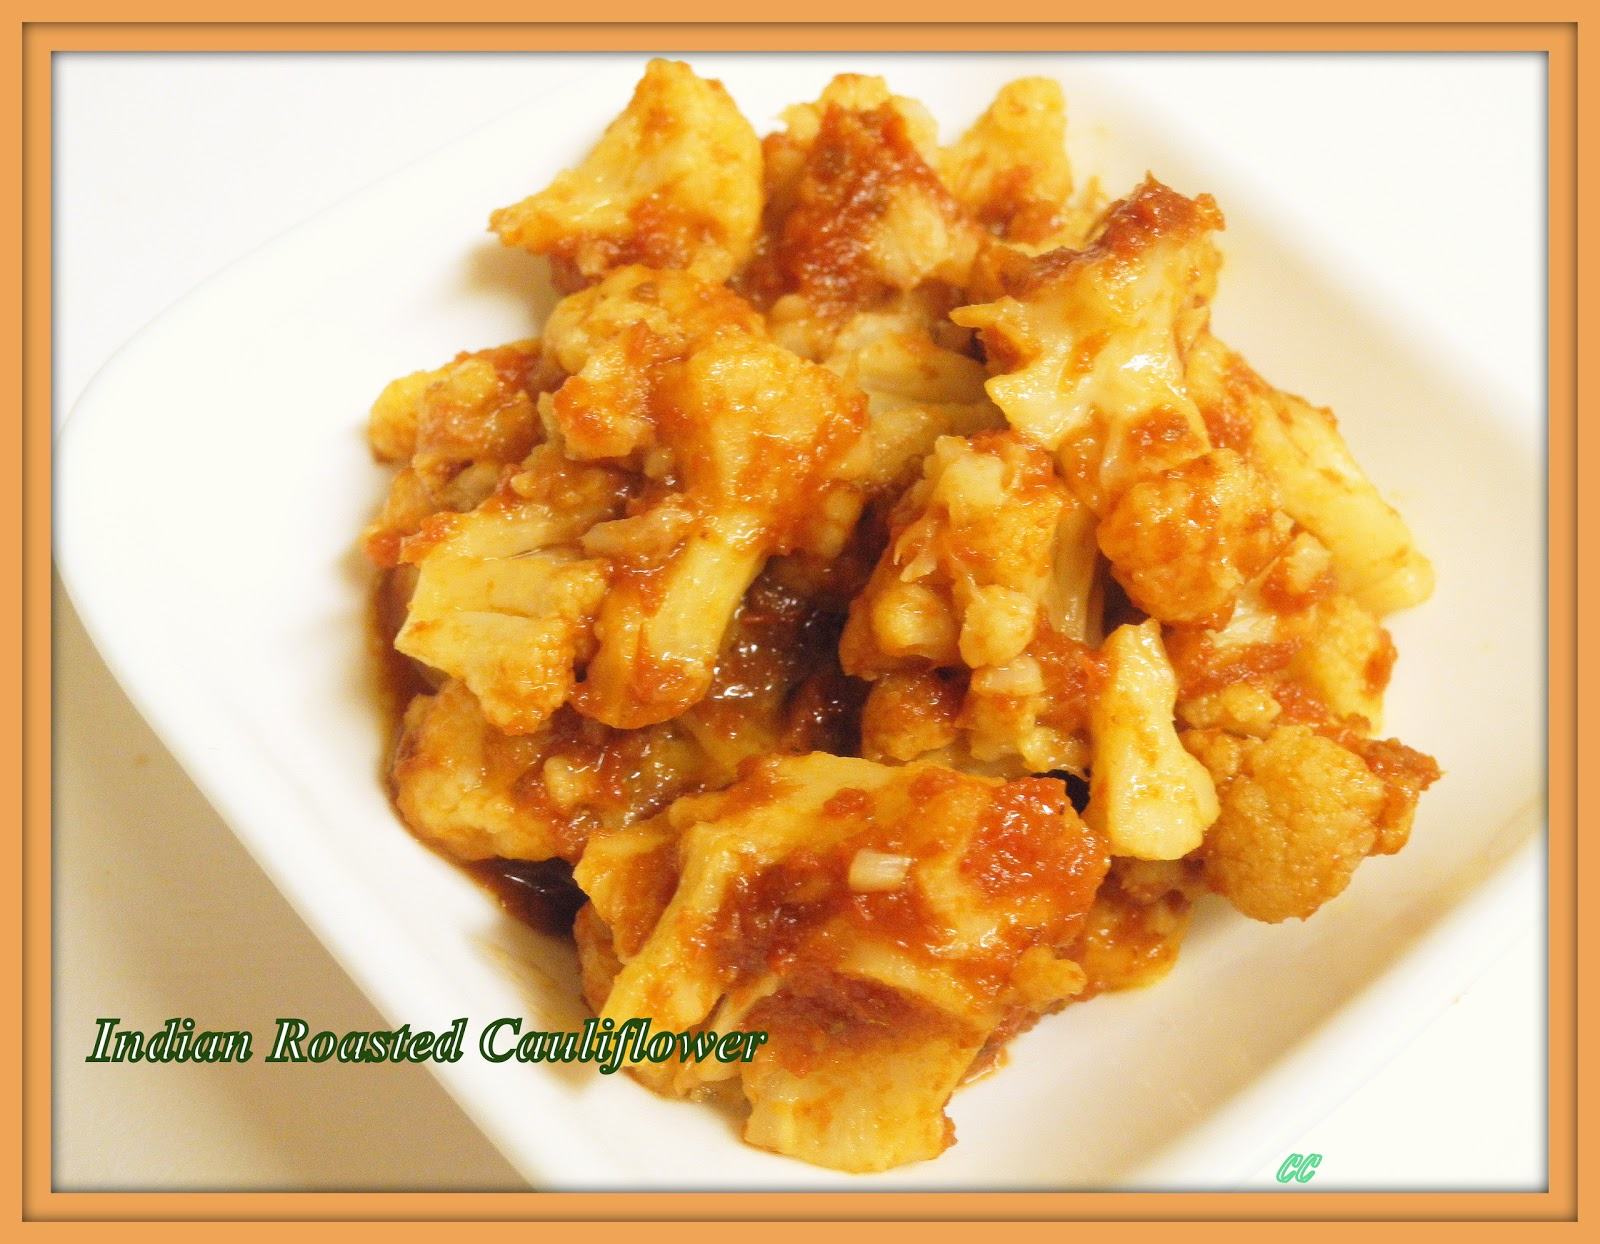 ... : Recipe Box # 20 - Roasted Cauliflower with Indian Barbecue Sauce